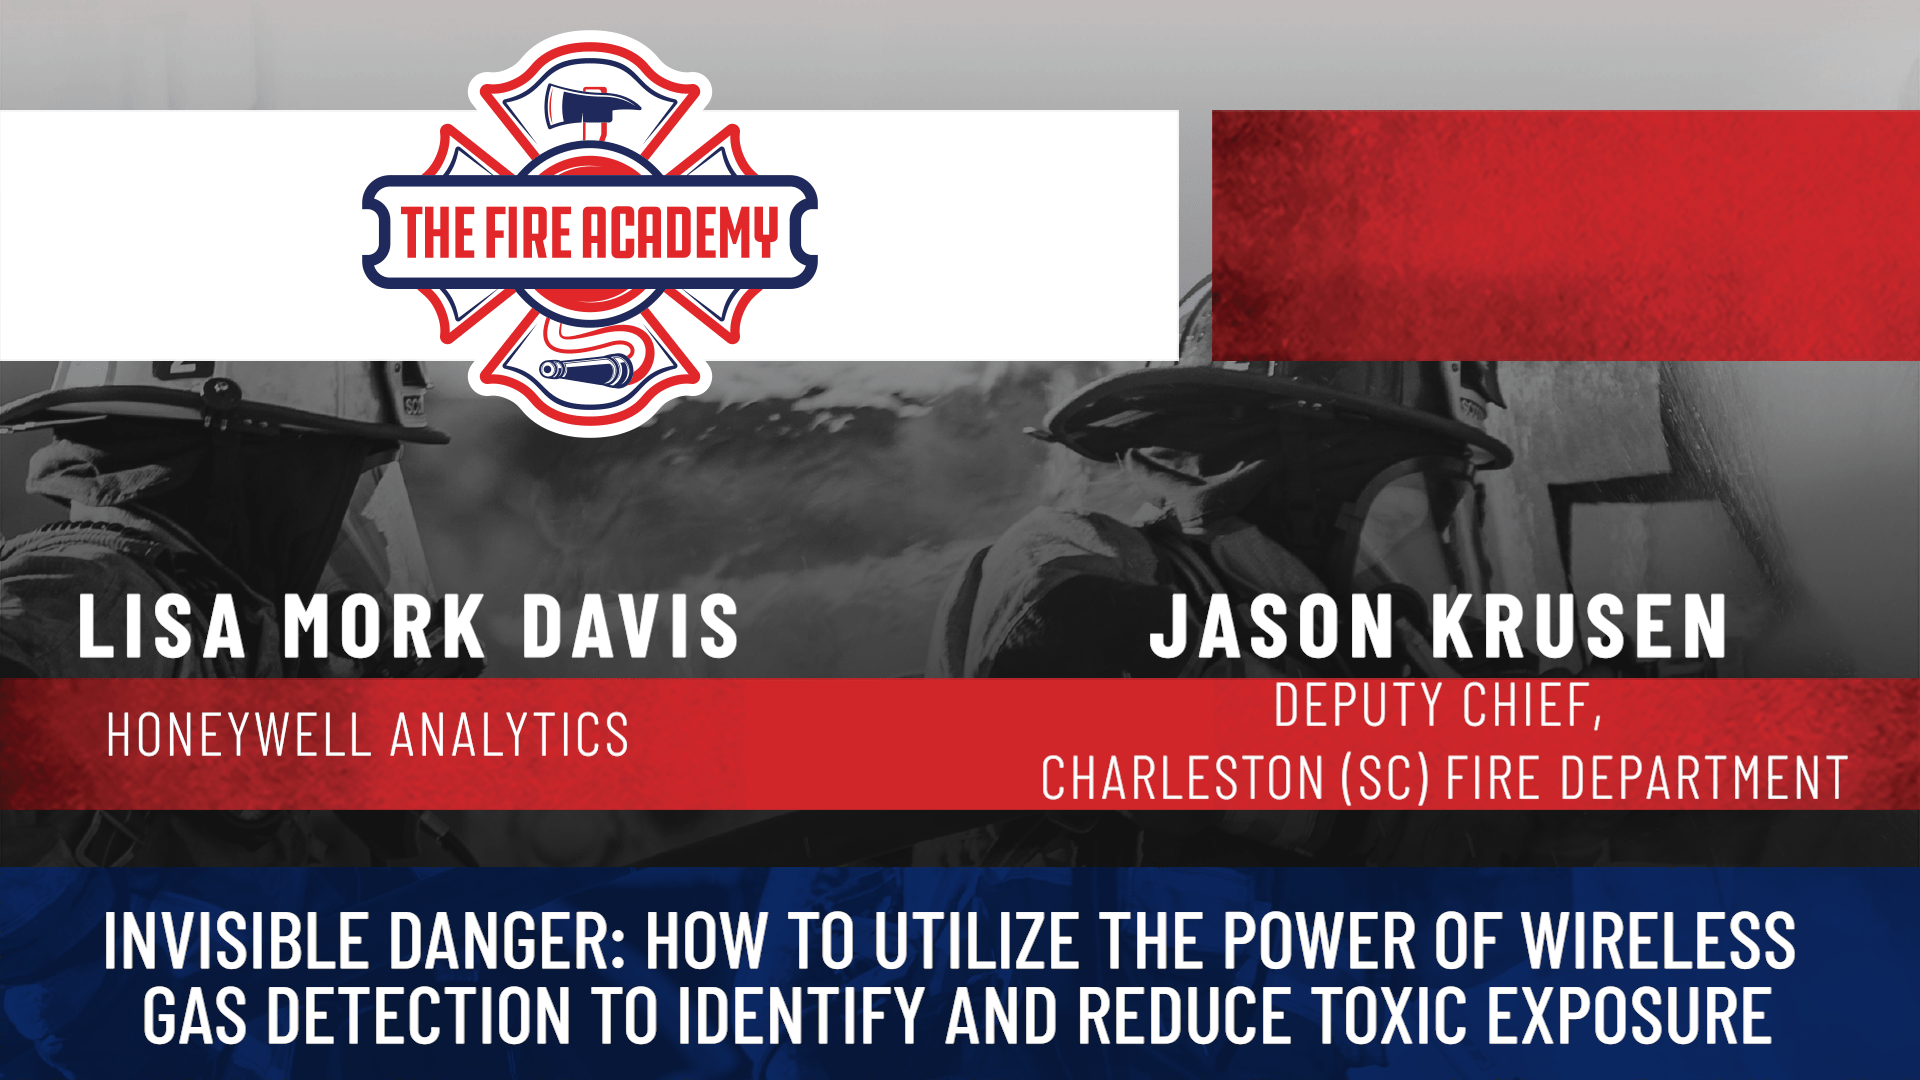 Invisible Danger: How to Utilize the Power of Wireless Gas Detection to Identify and Reduce Toxic Exposure